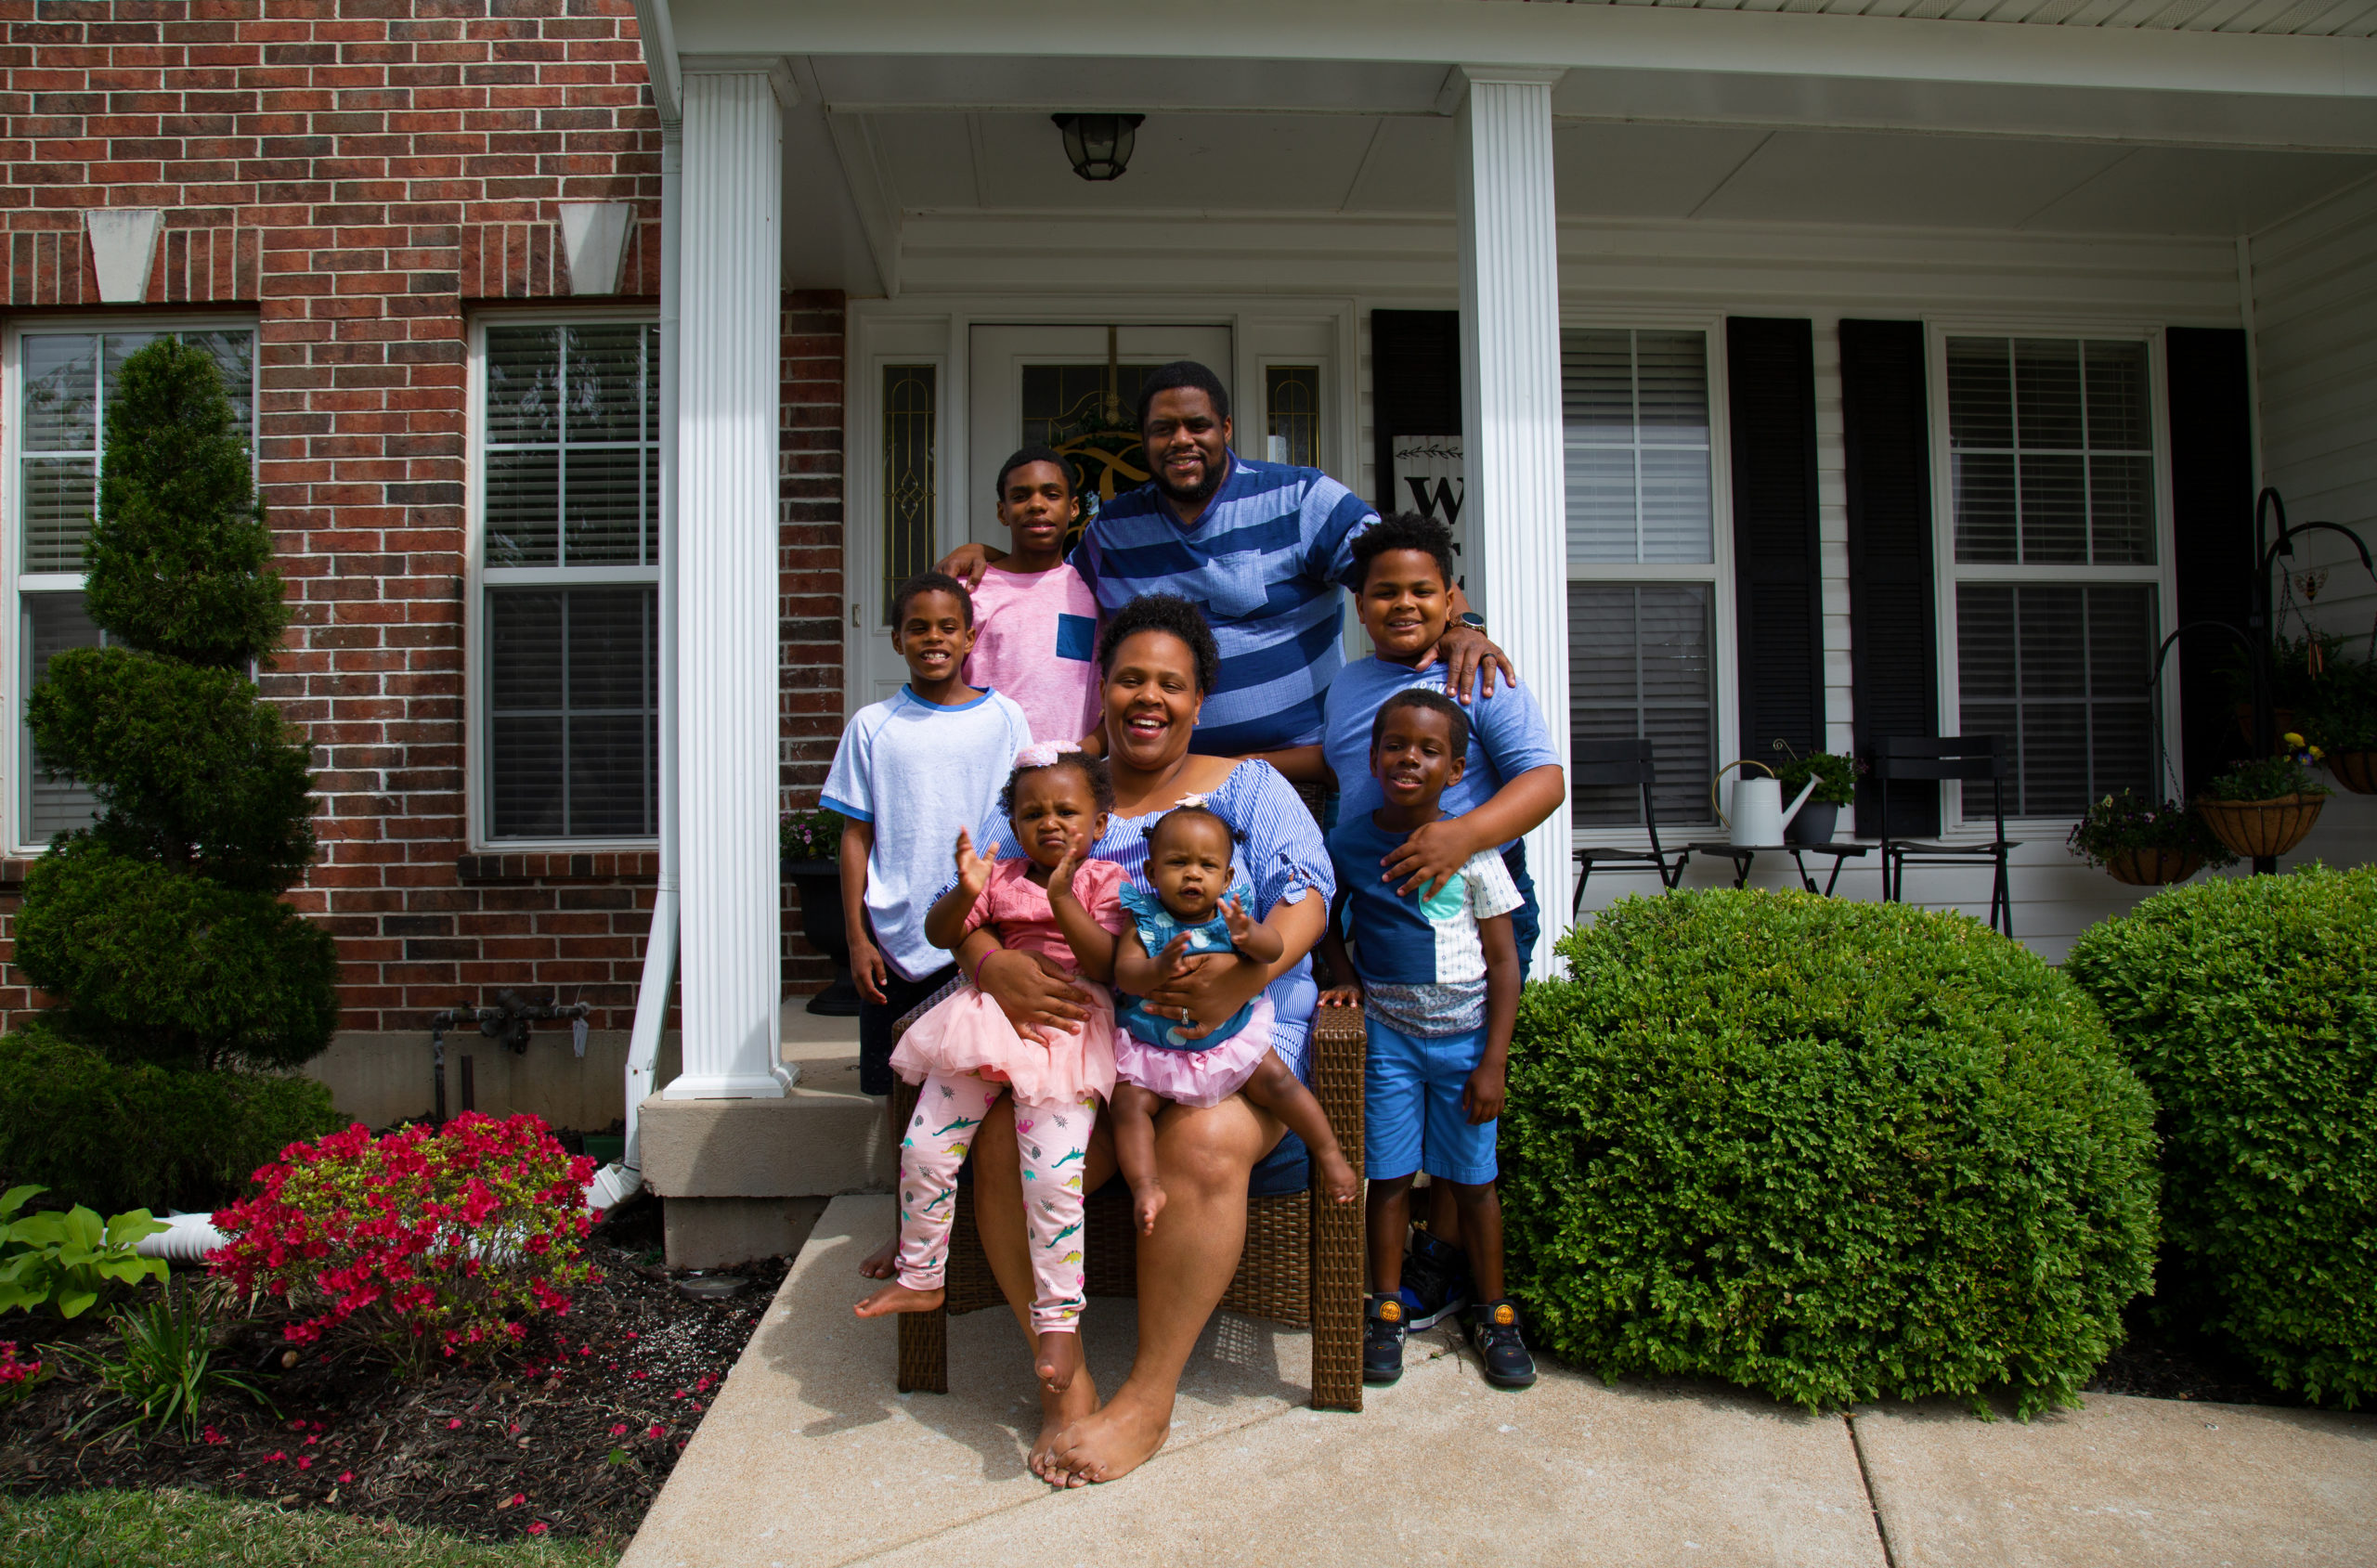 Smiling Black family in front of their home